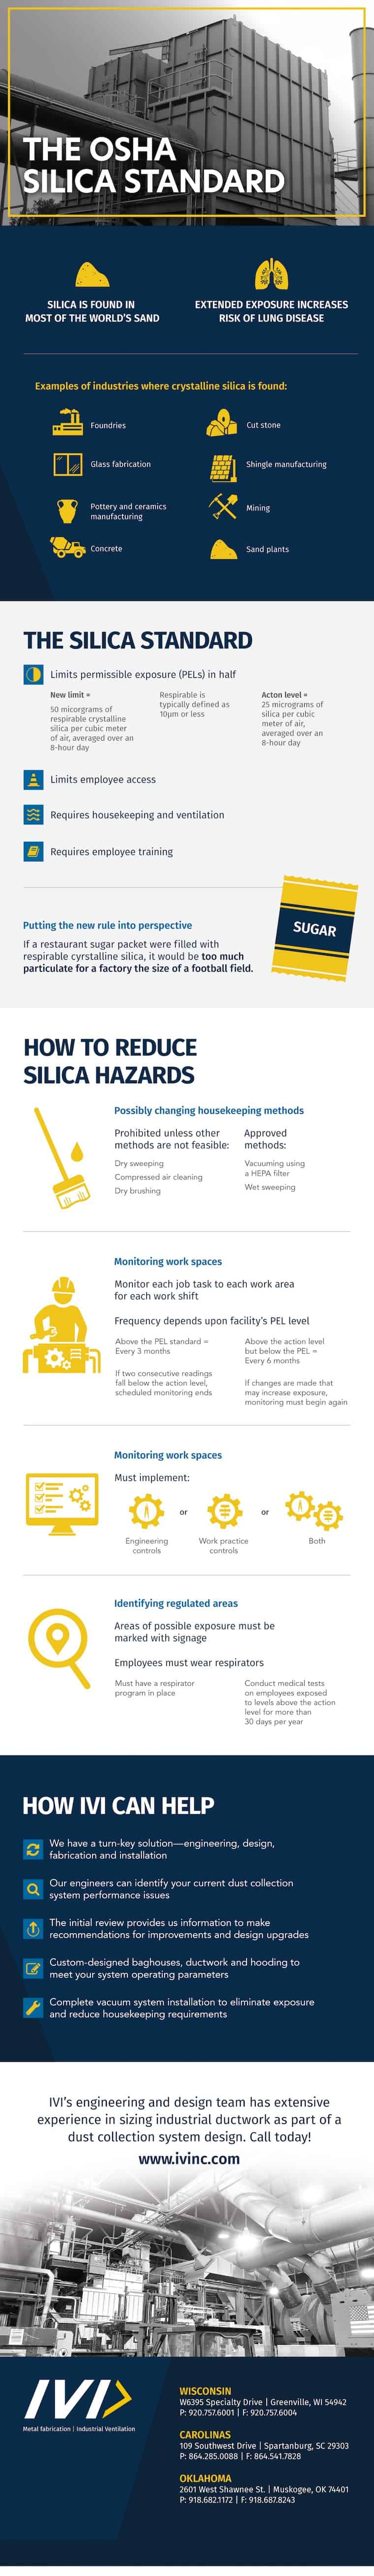 Infographic about the OSHA silica standard